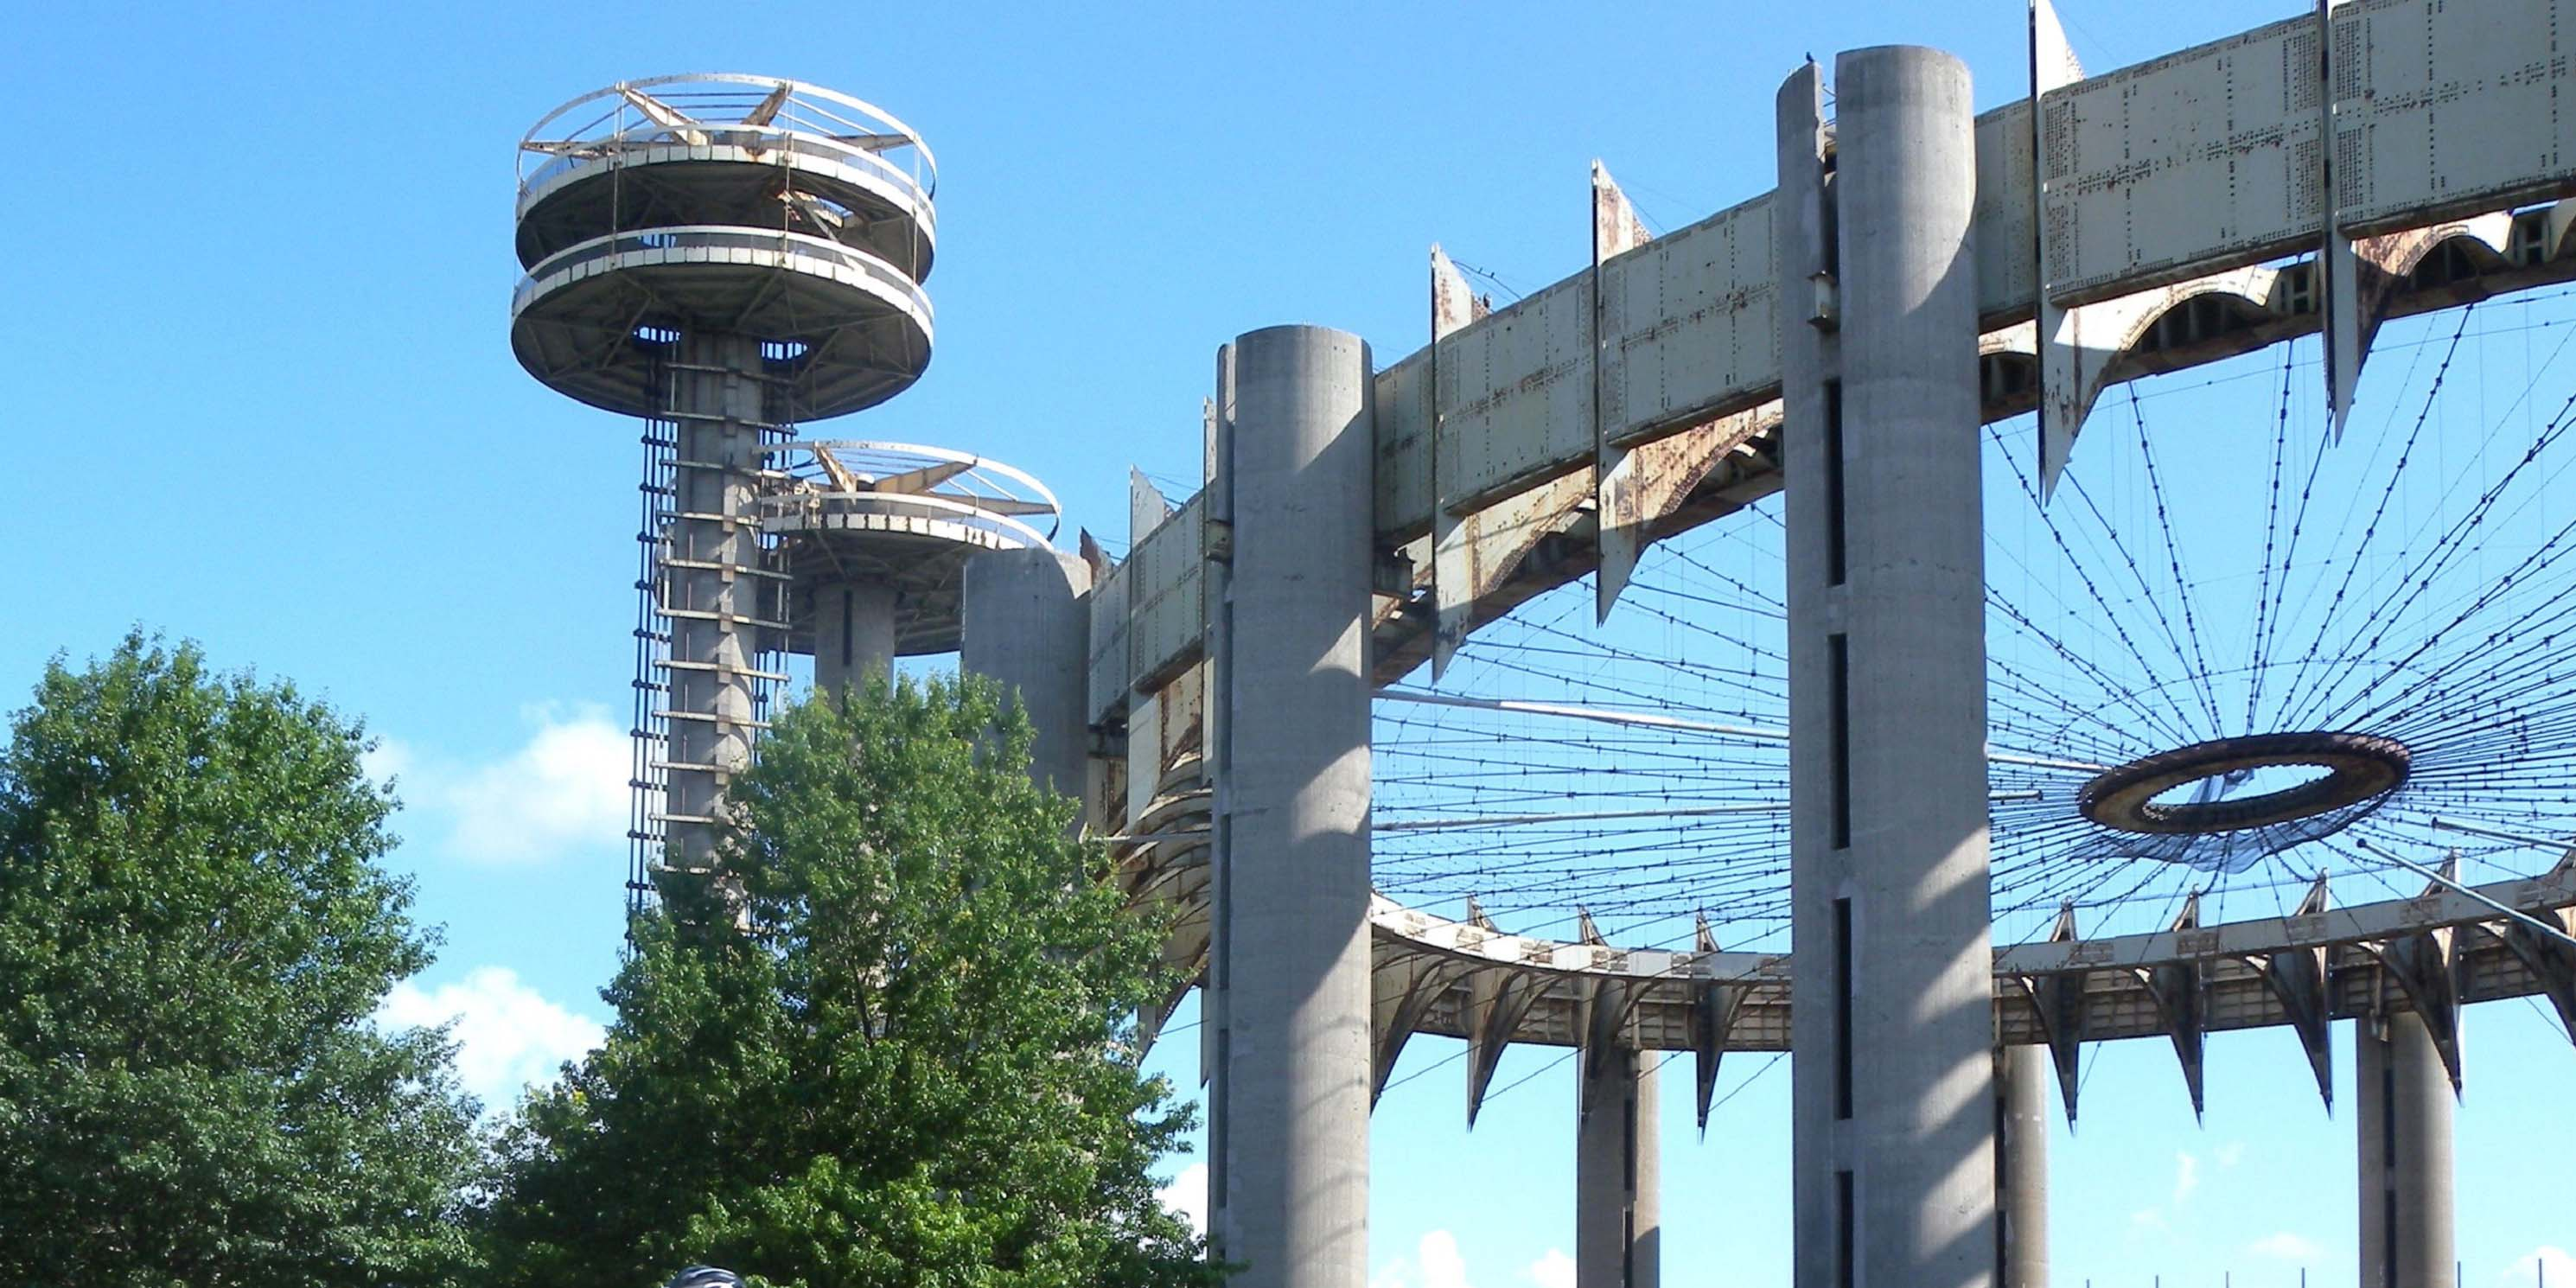 New York State Pavilion in Queens, built for the World's Fair